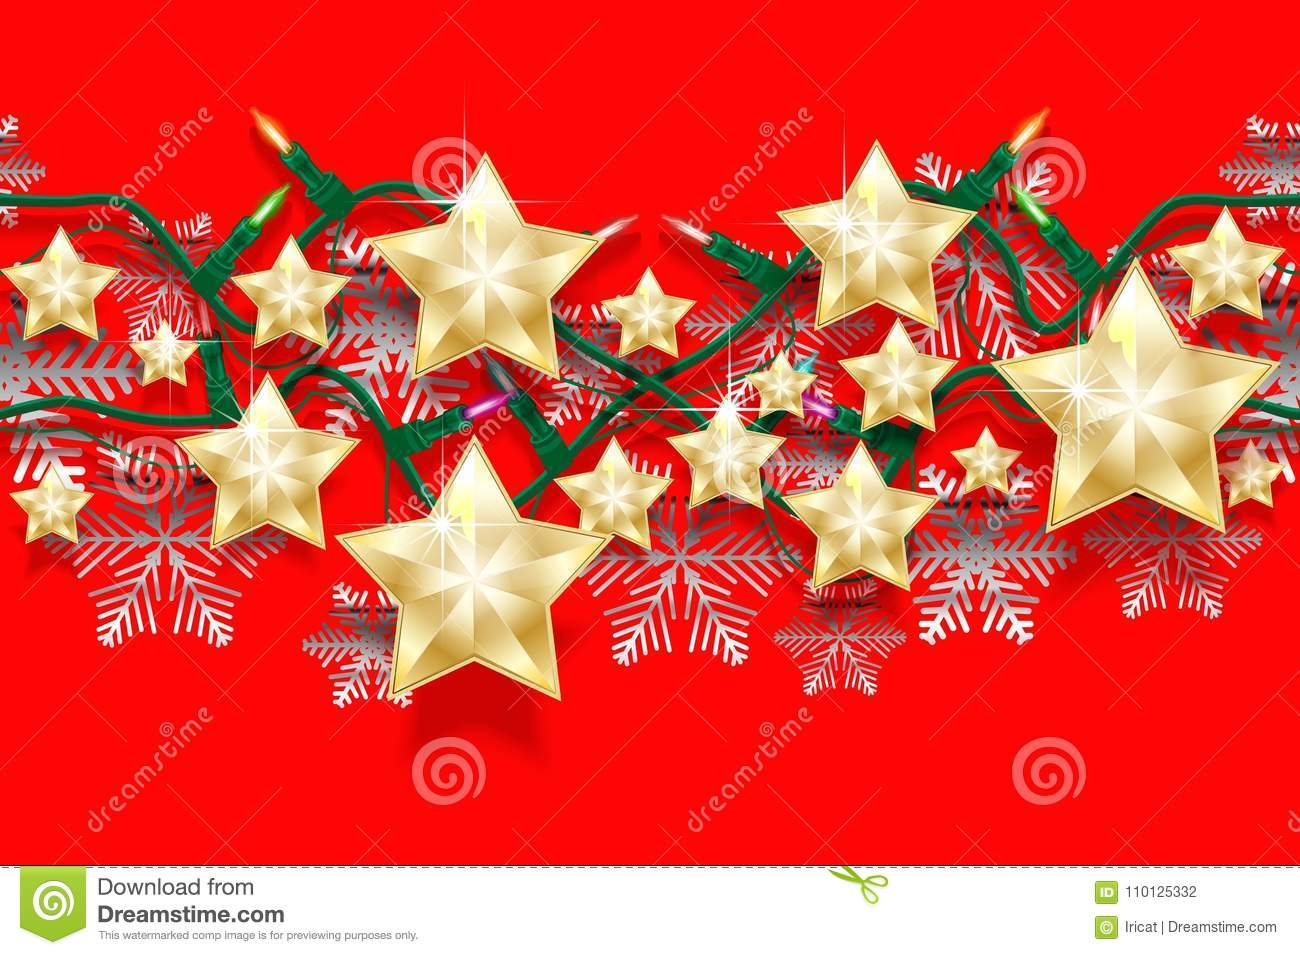 christmas seamless horizontal pattern of stars snowflakes and garlands with light bulbs bright new